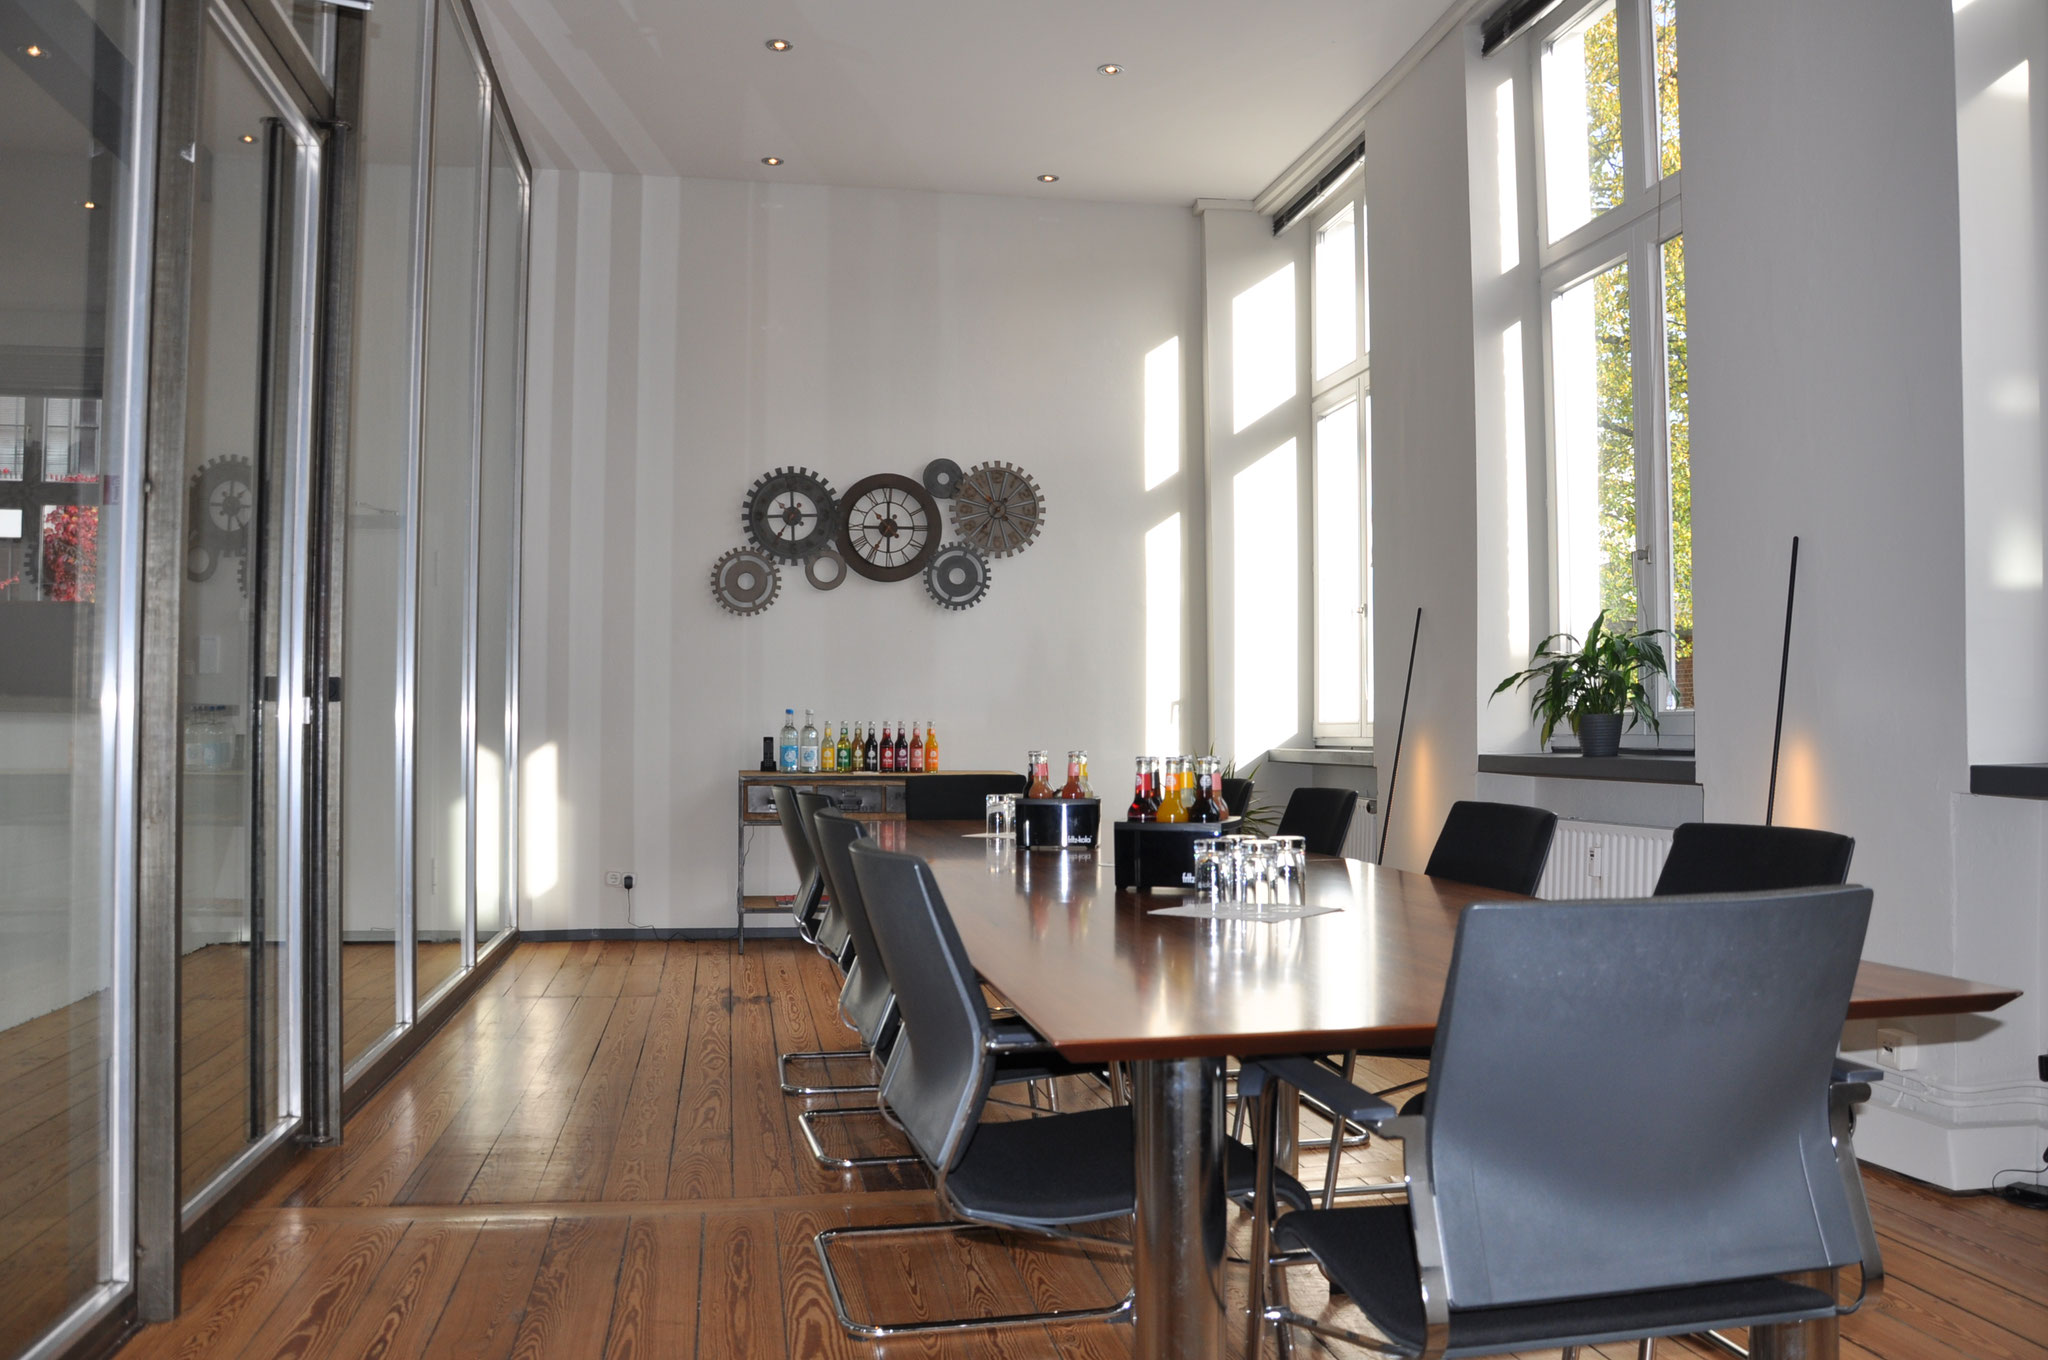 Buro Loft Grossraumburo Die Ferberei Home Staging Hamburg